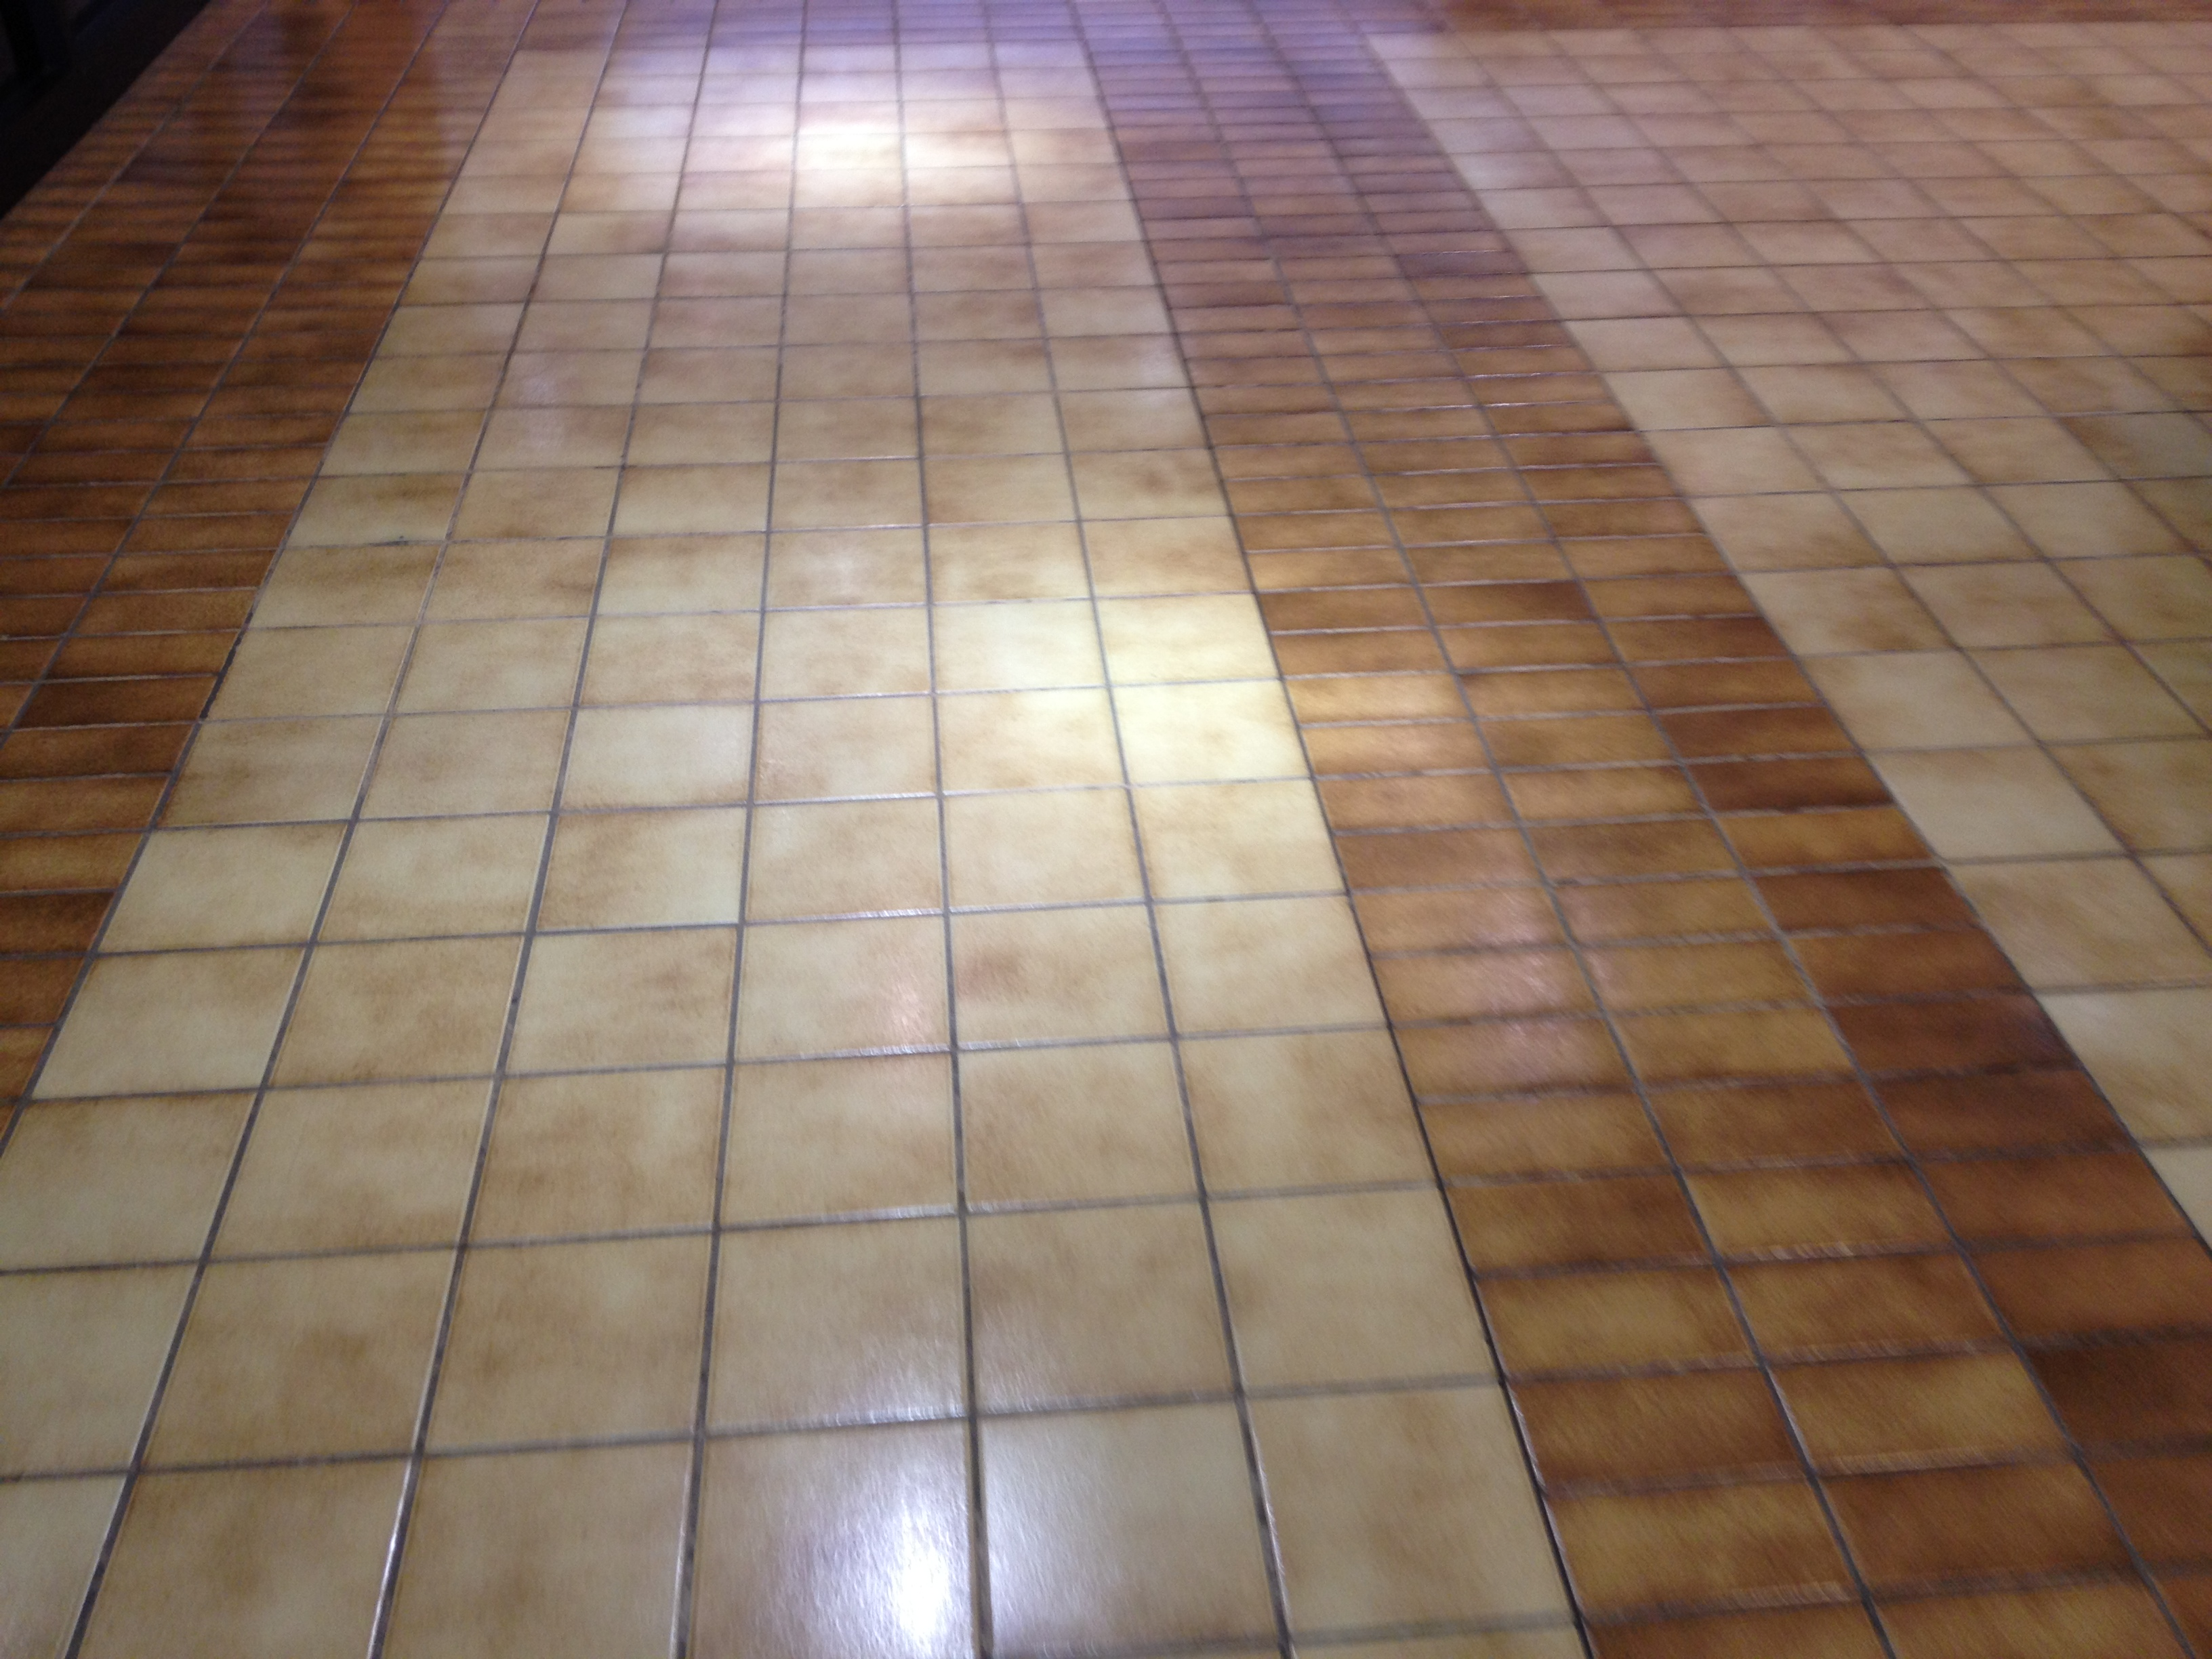 Floor Tile Workers : File cool floor tiles piedmont mall danville va